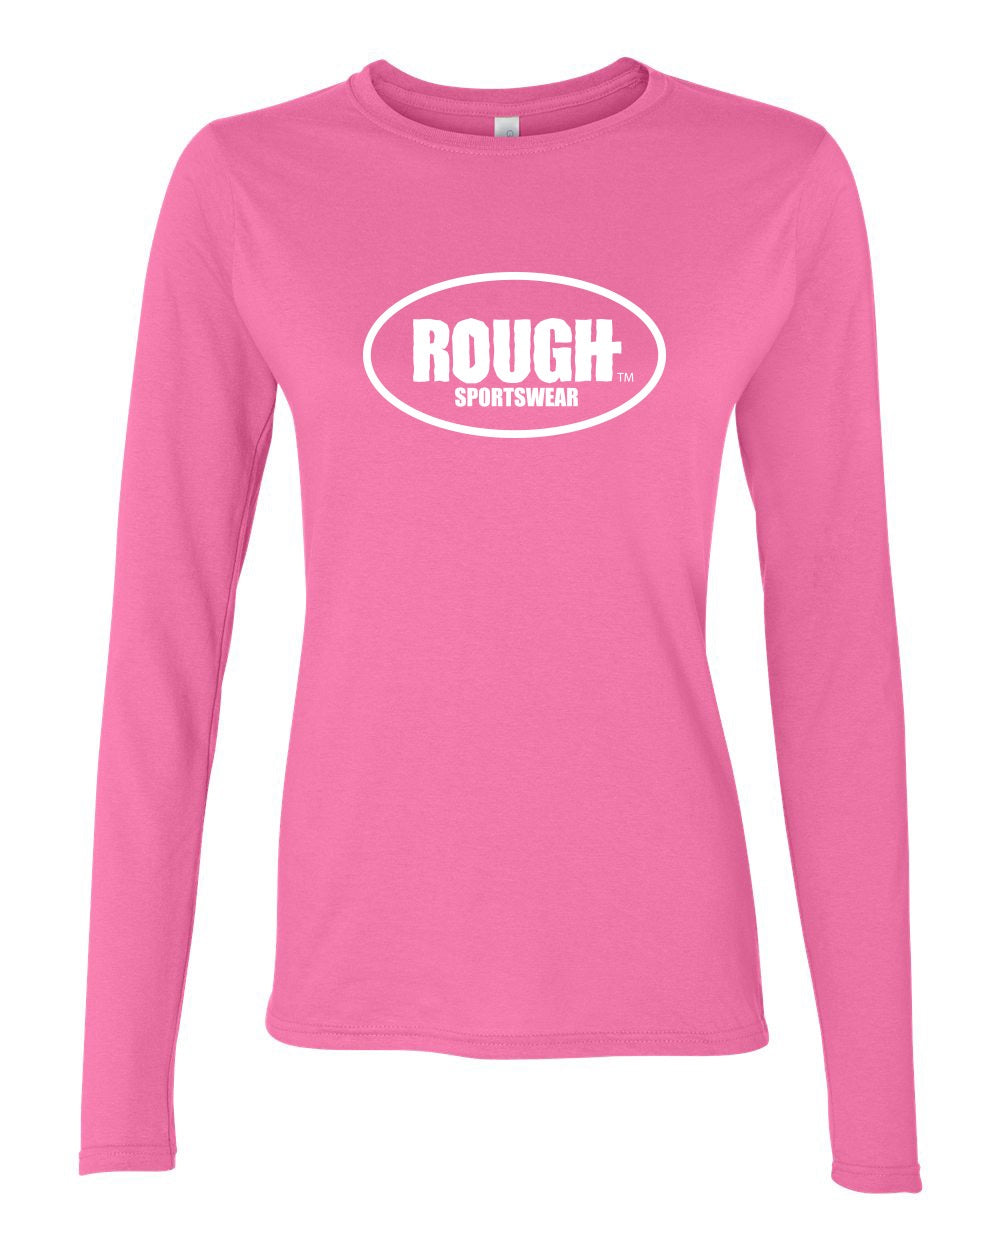 Women's Classic ROUGH Long Sleeve Cotton T-Shirt